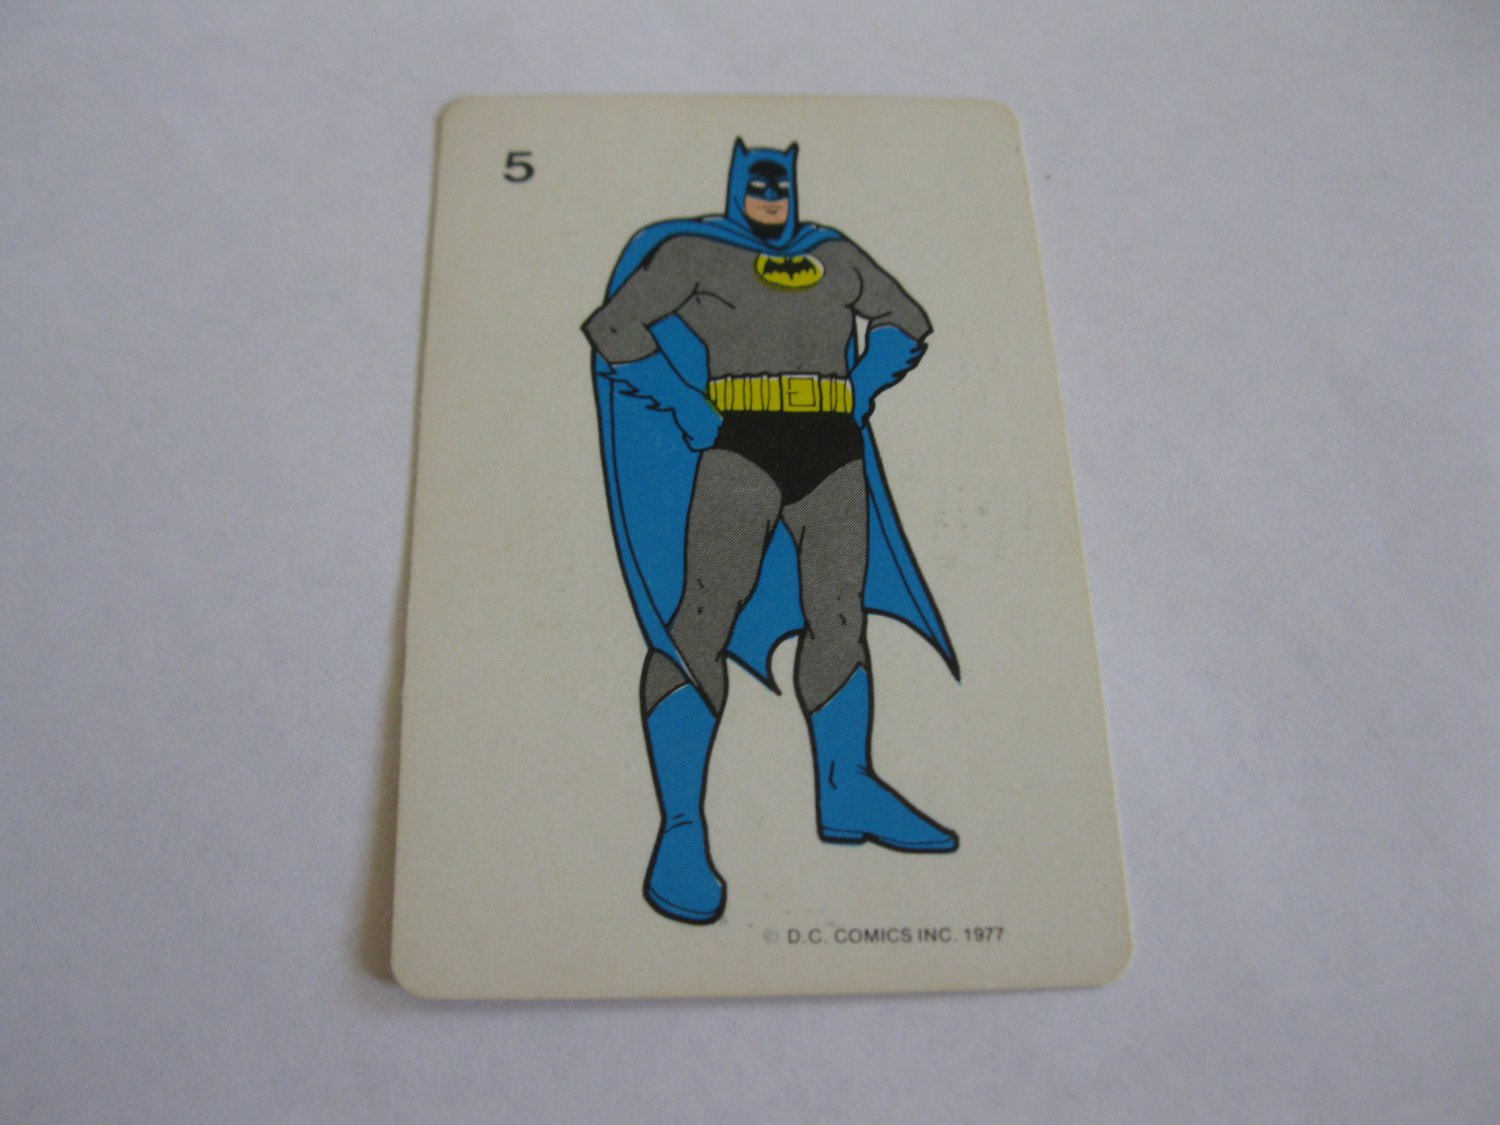 1977 DC Comics Game Card #5: Batman